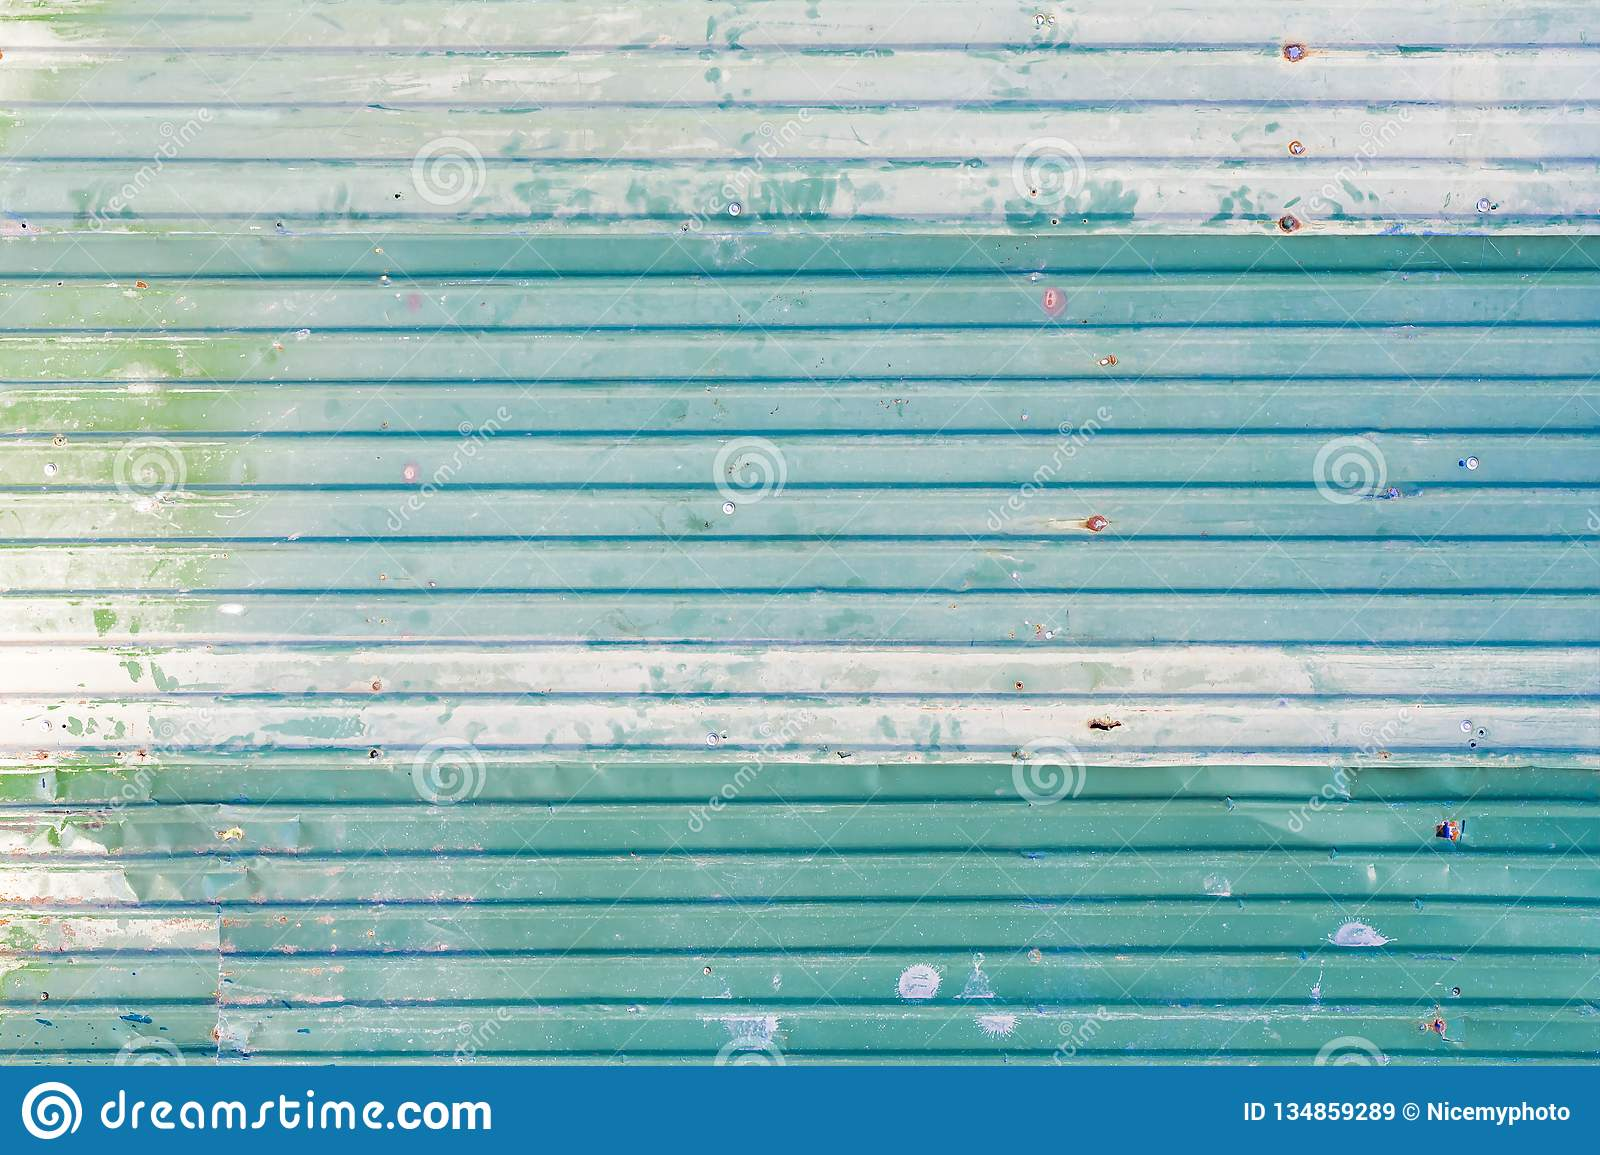 Corrugated Galvanized steel green color iron metal sheet with rusty surface for texture and background